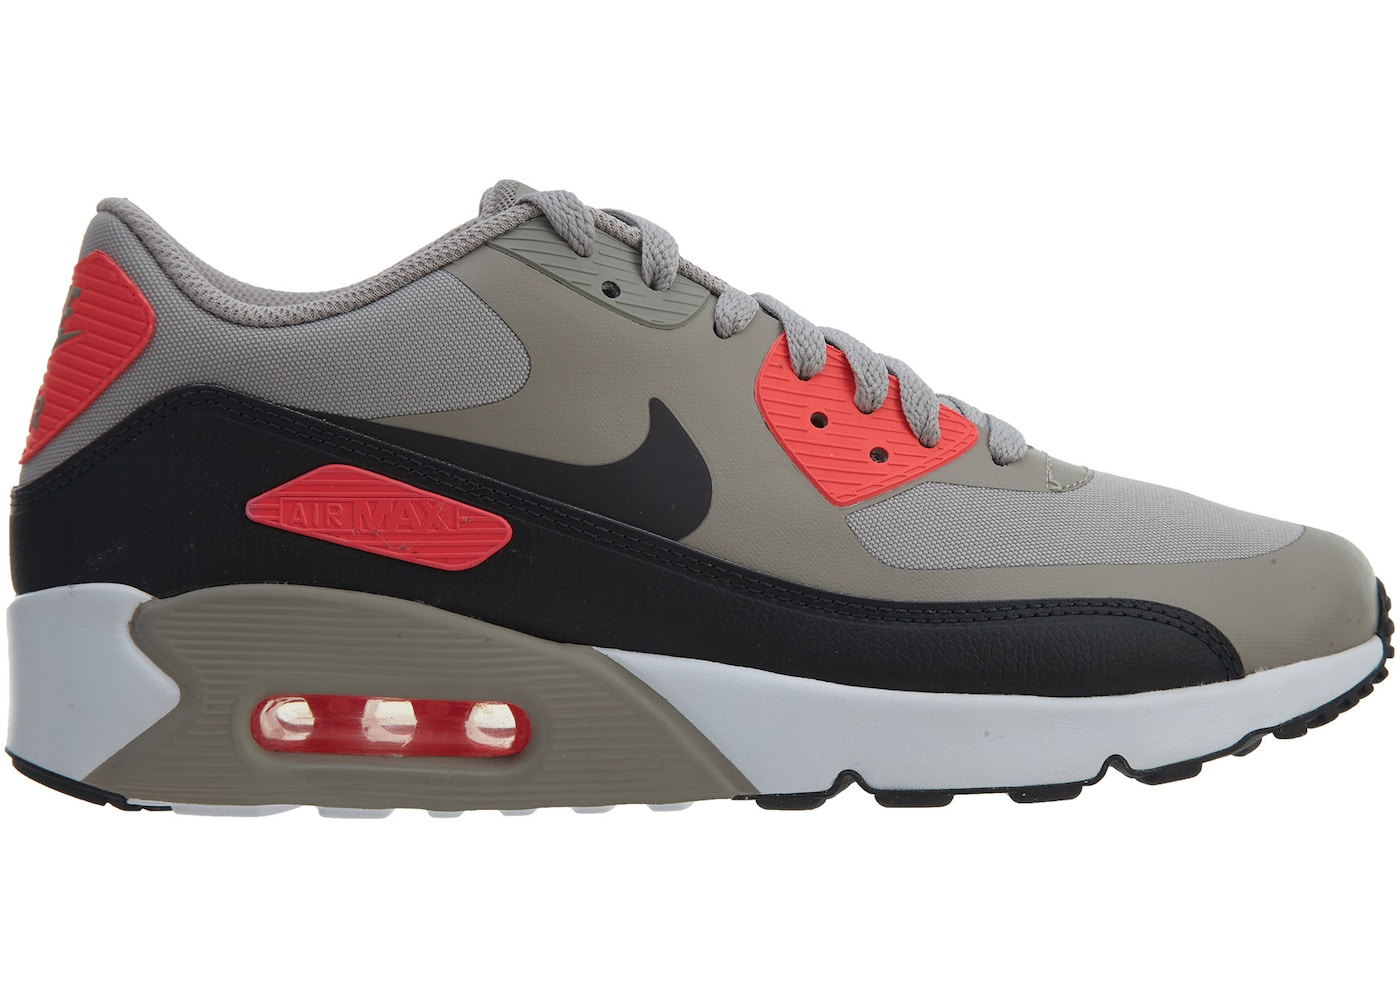 227f188703 Sell. or Ask. Size: 12.5. View All Bids. Air Max 90 Ultra 2.0 Essential  Cobblestone Anthracite